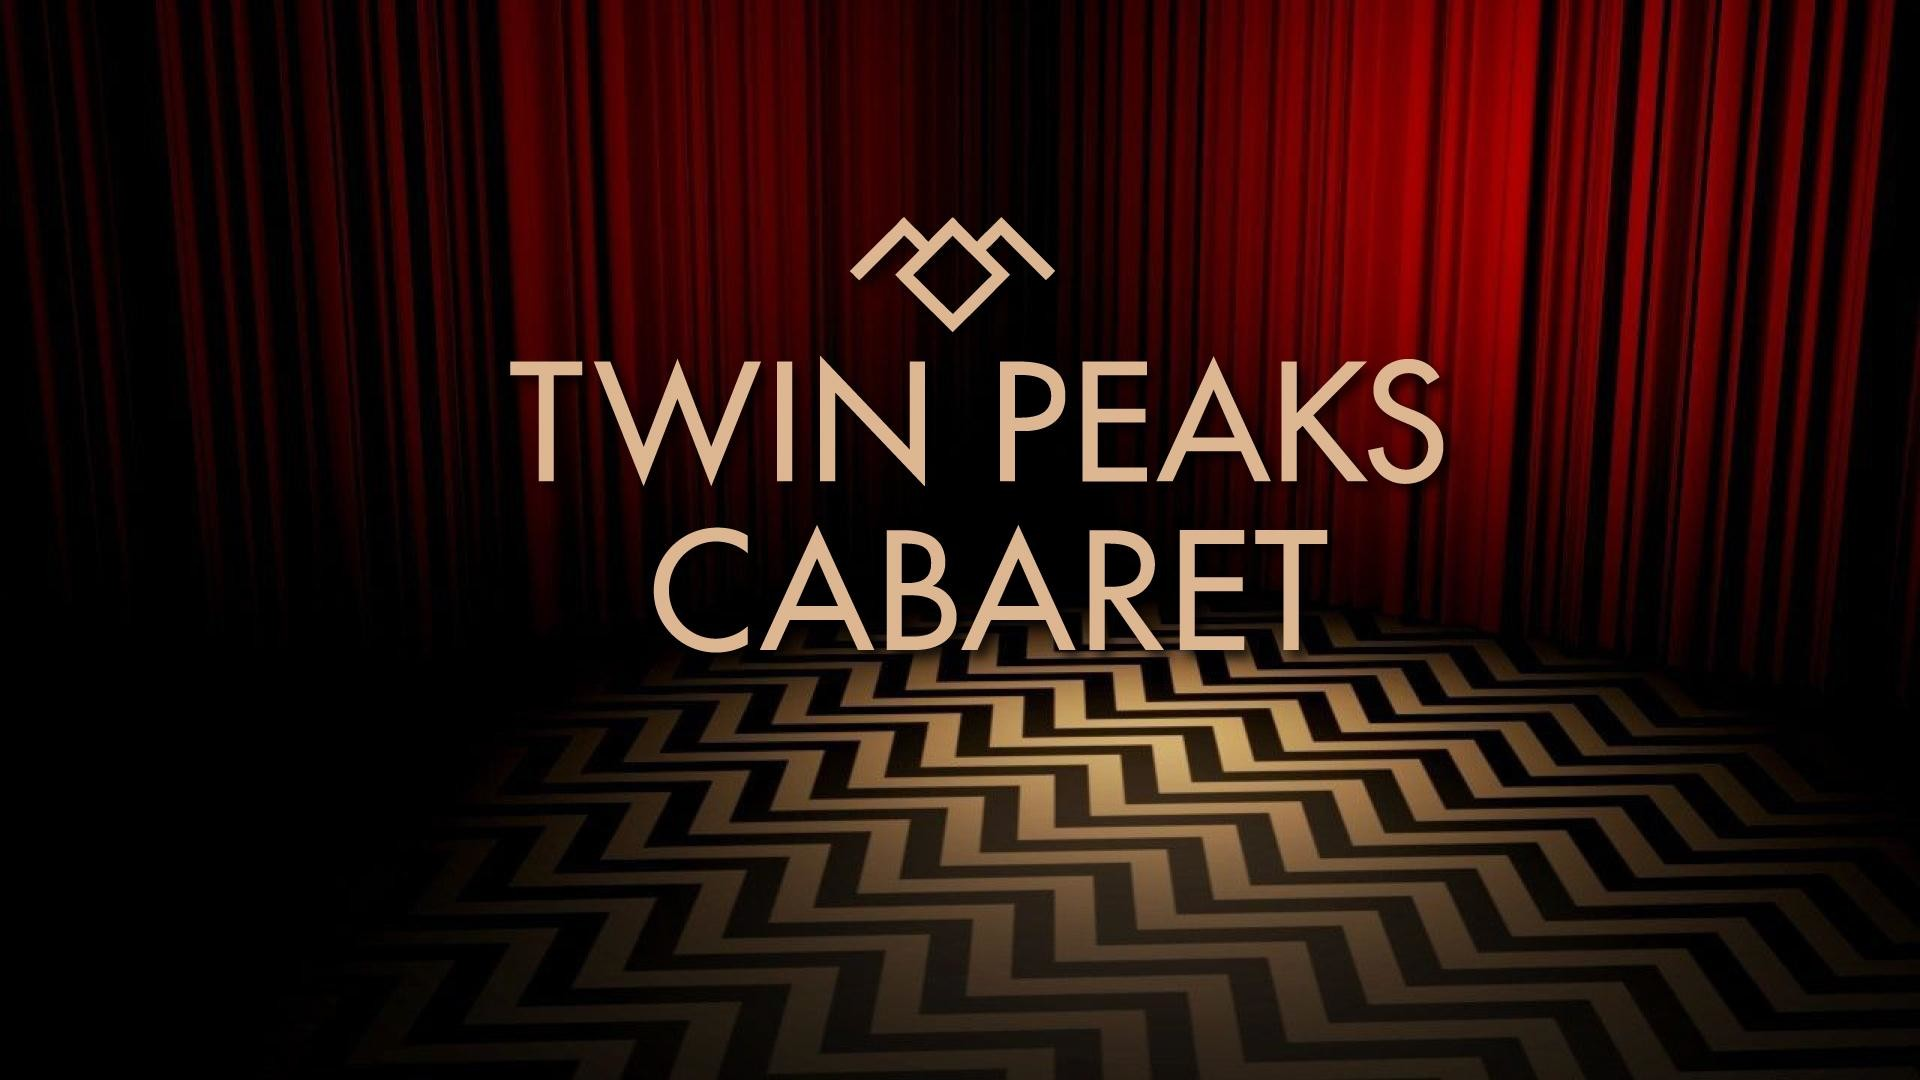 the plagued town of twin peaks The acclaimed showtime series twin peaks it will instead focus on the main character's return to the town of twin peaks but the series was plagued.